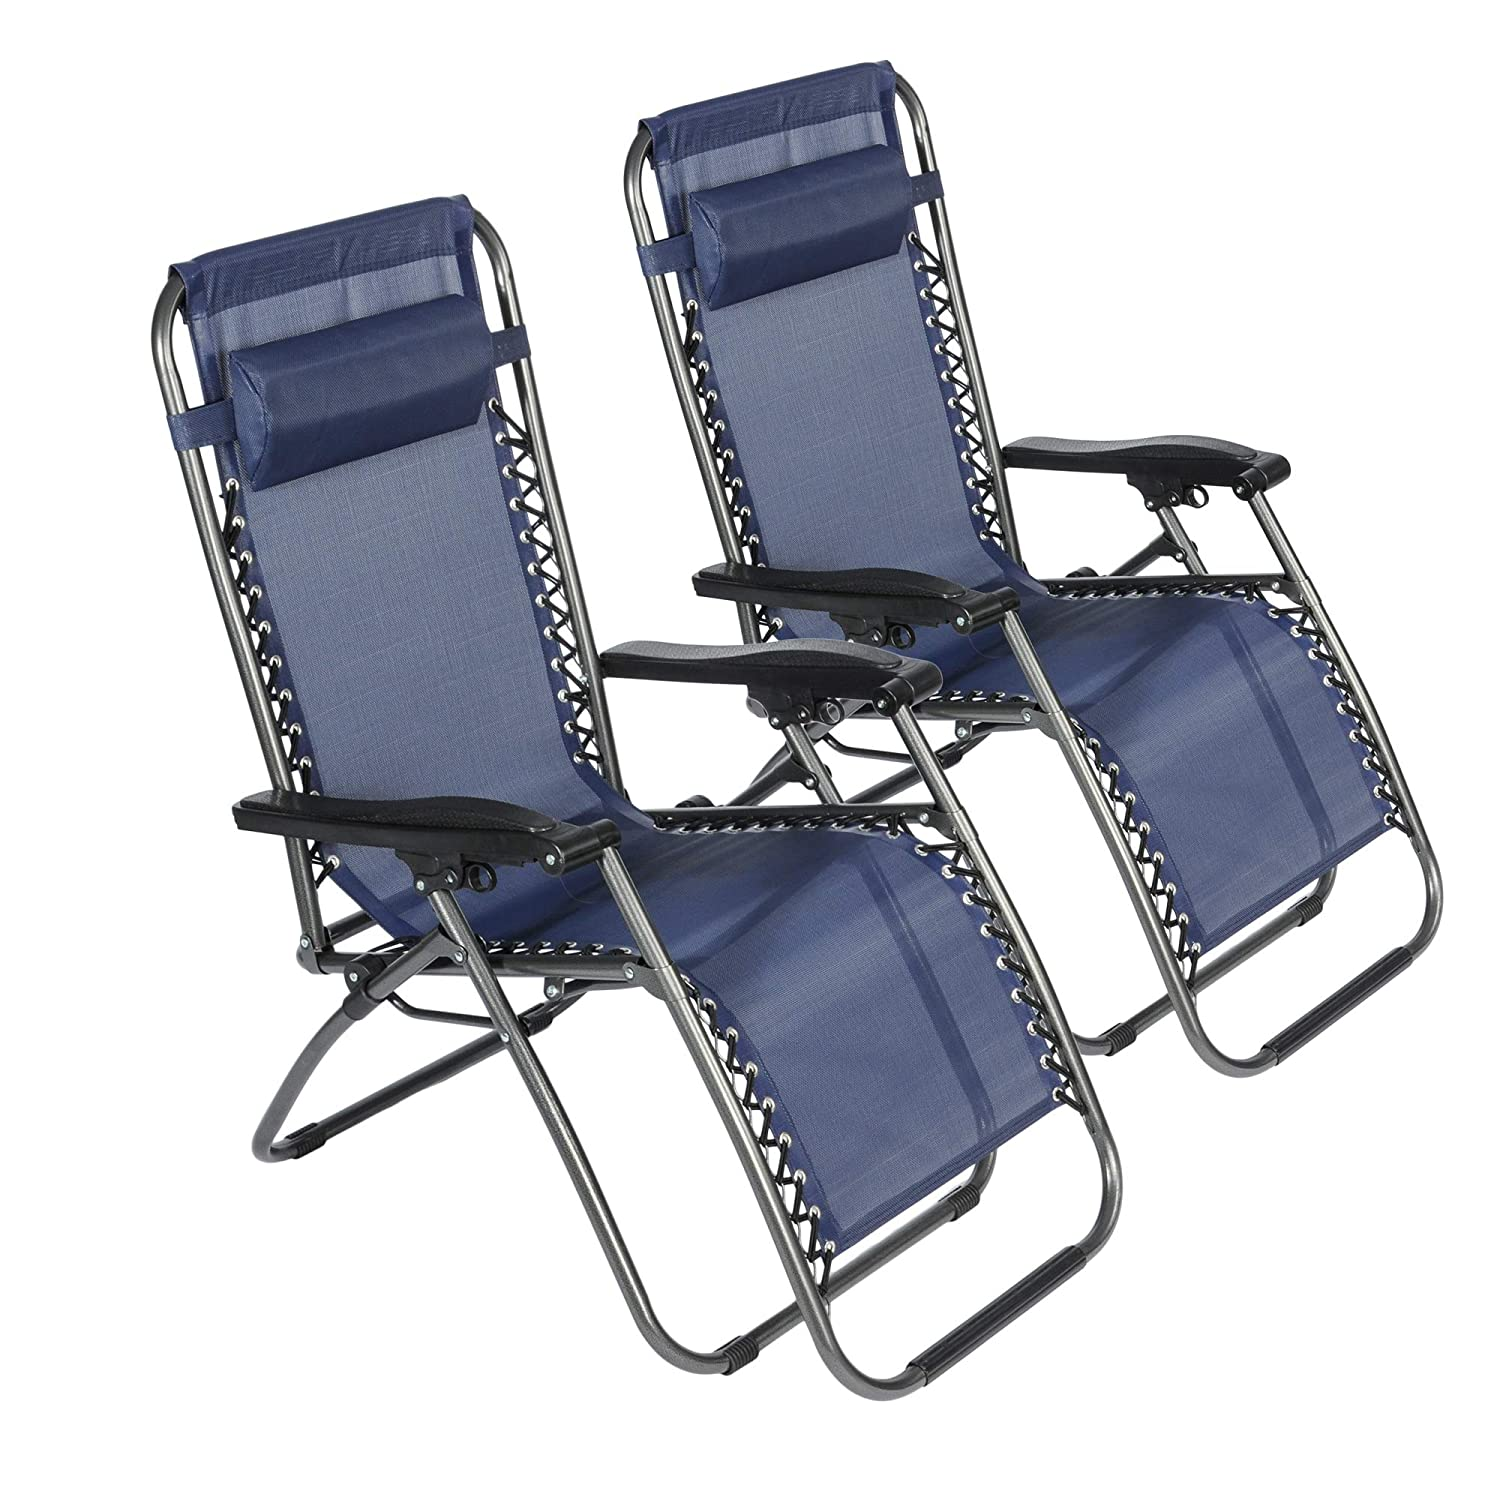 Amazon.com: LUCKYERMORE 2-Pack Zero Gravity Chair Folding ...